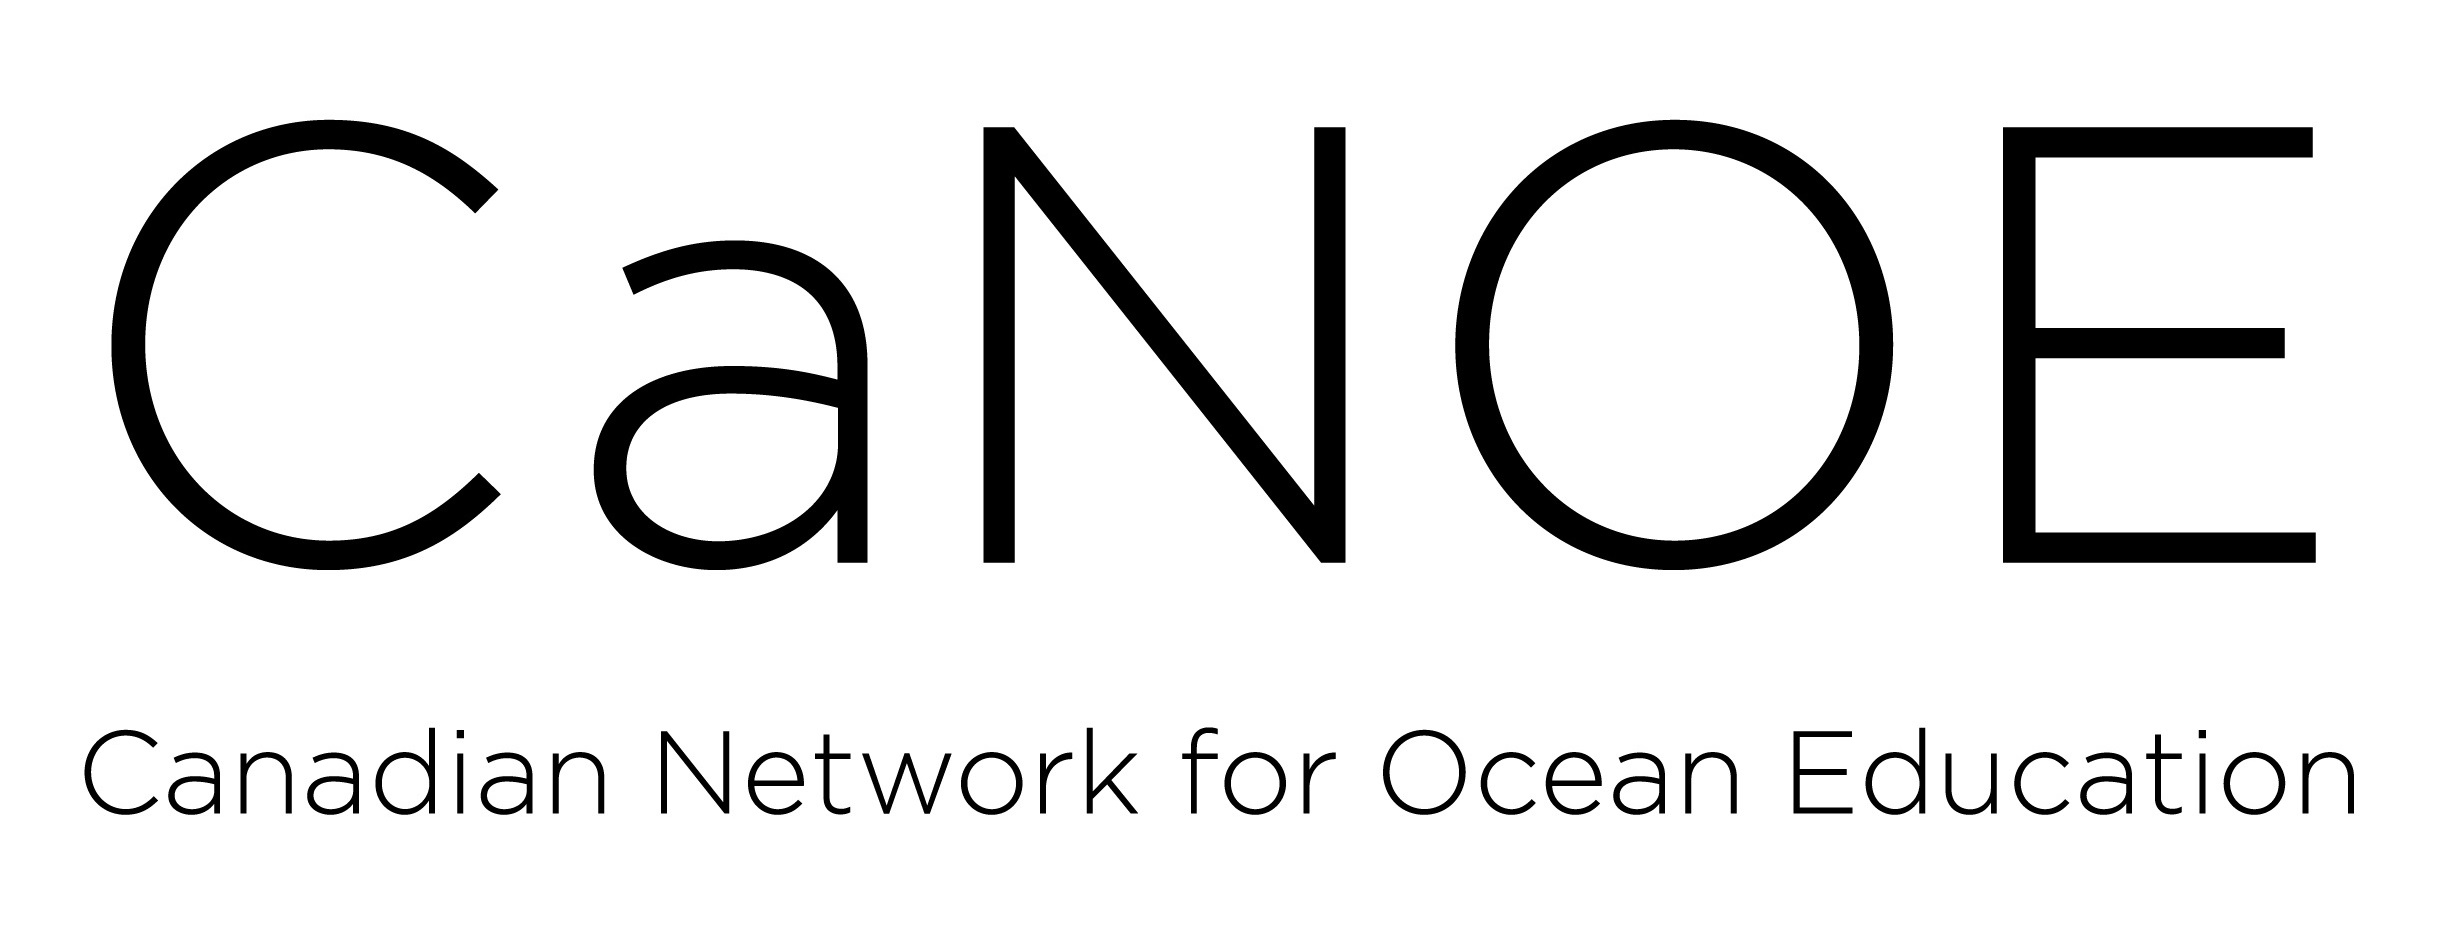 Image result for Canadian Network for Ocean Education